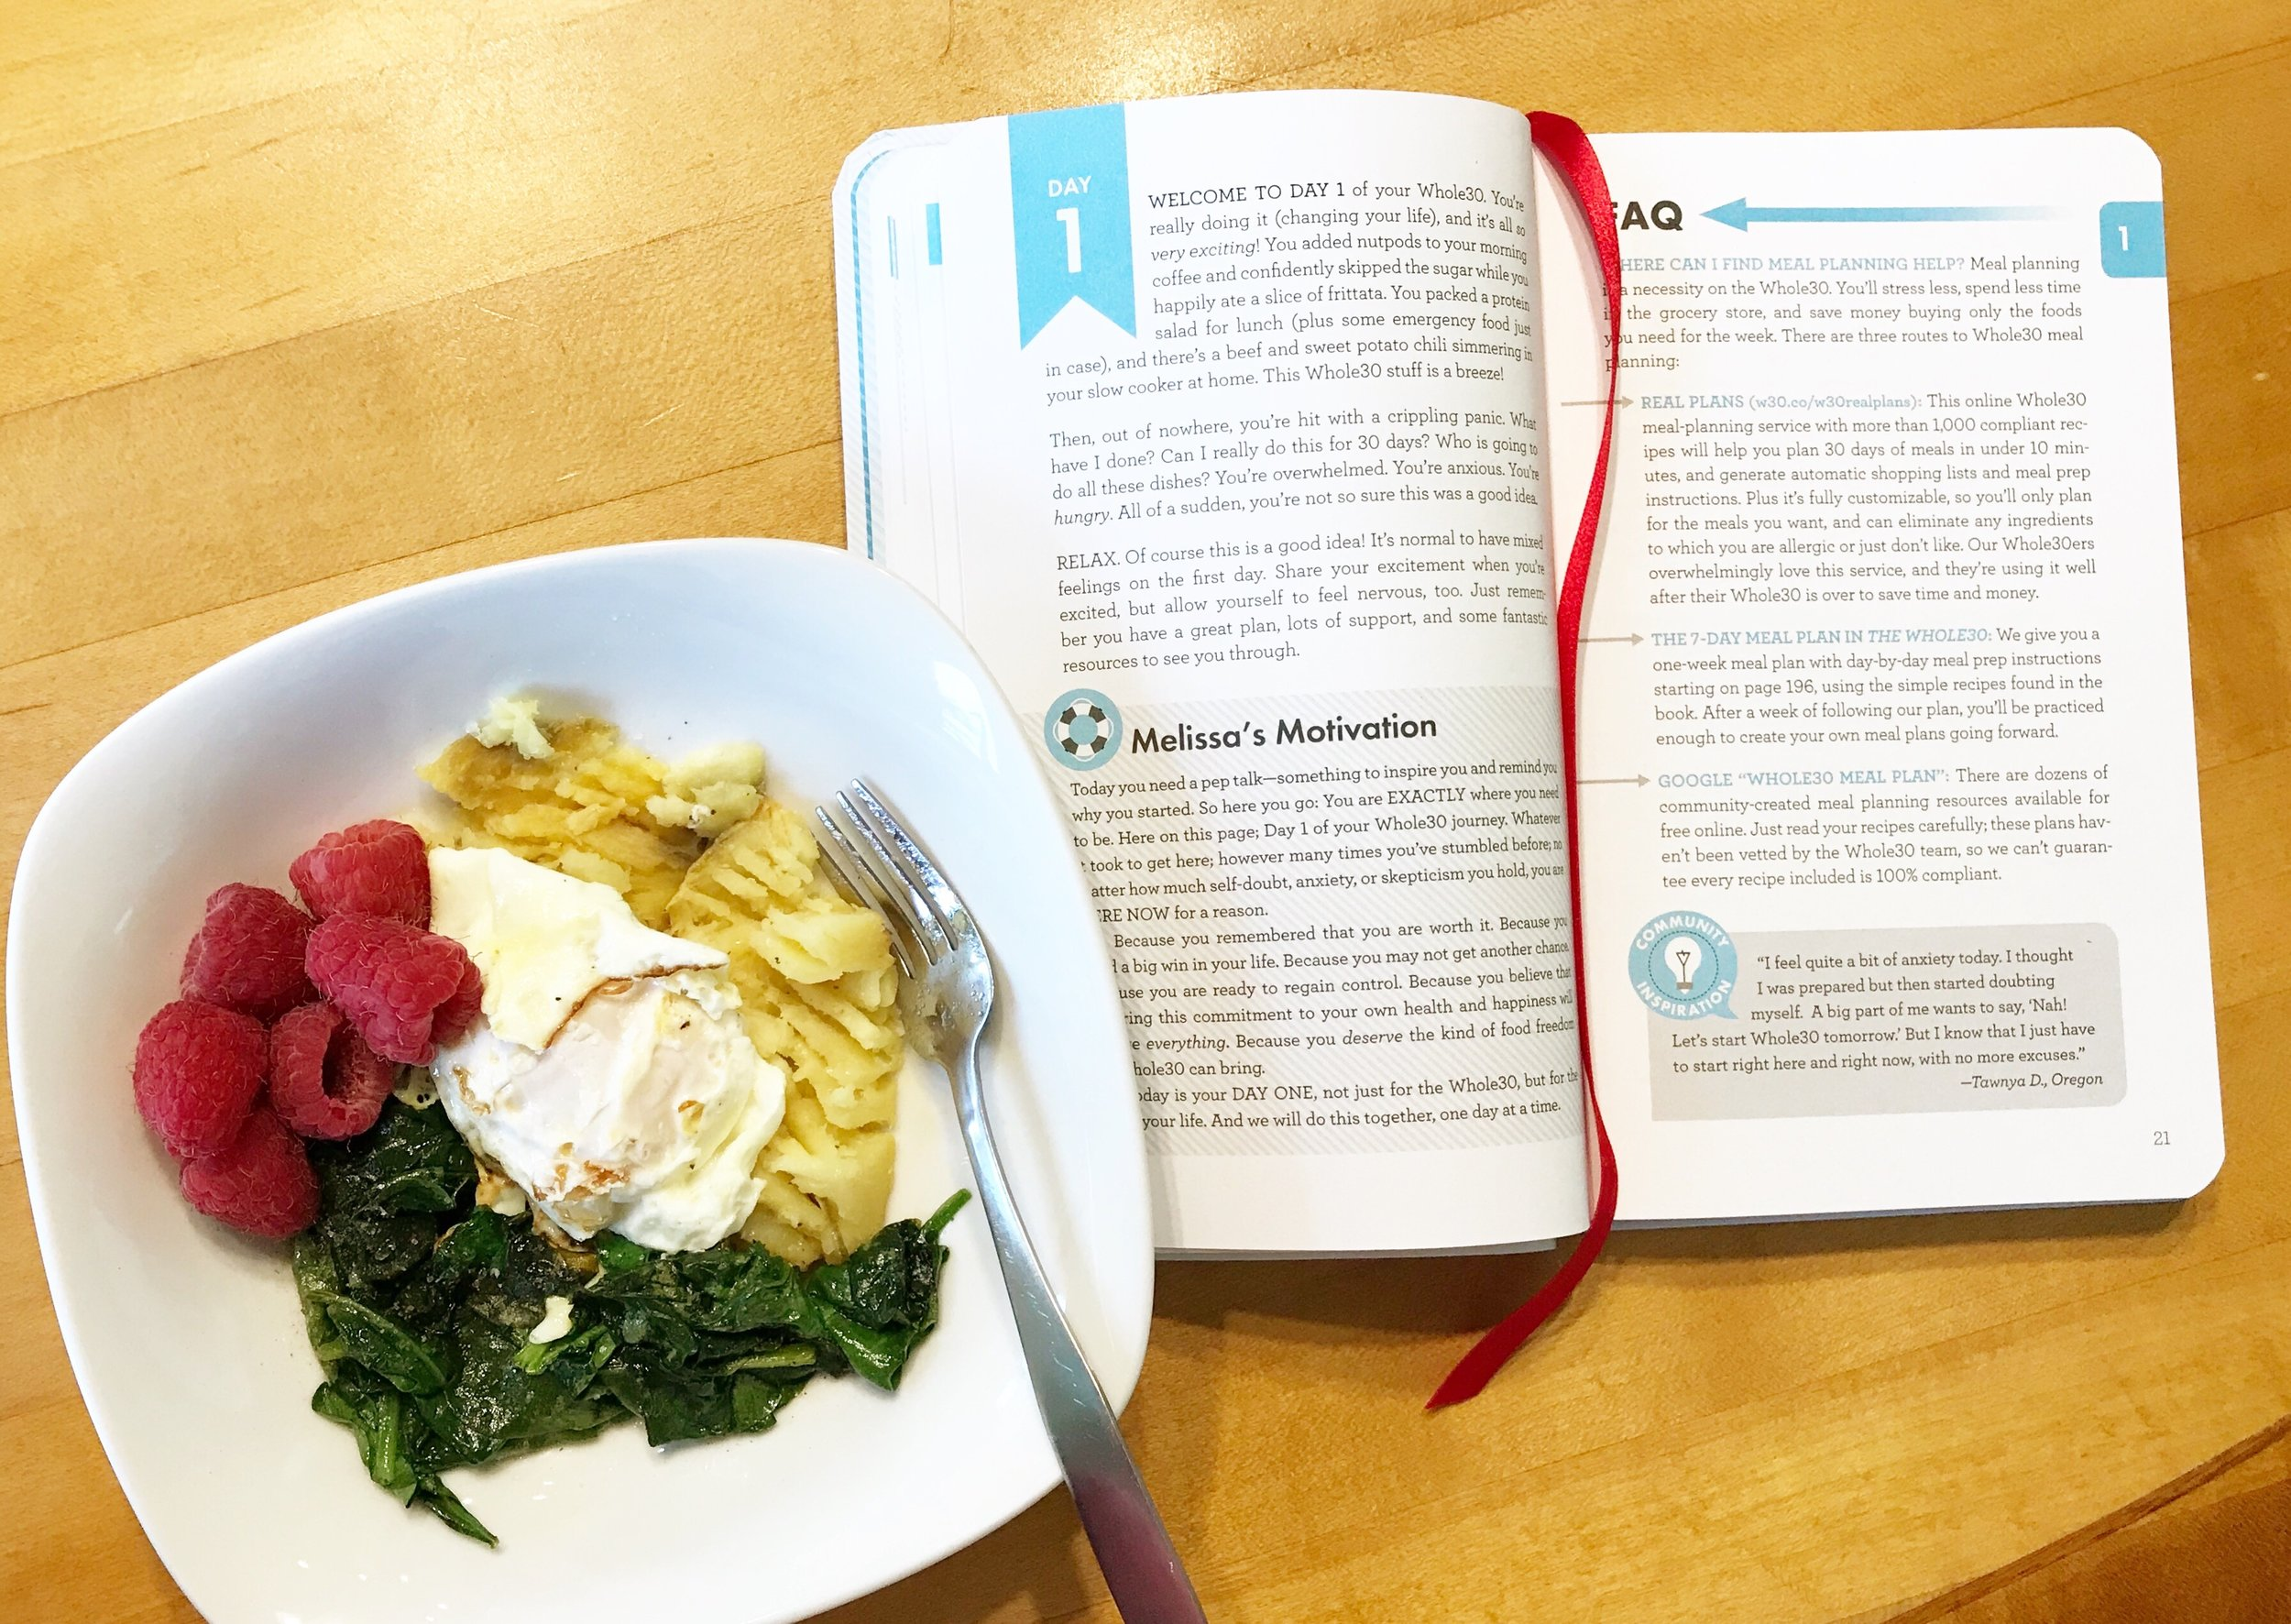 This time as I work my way through the Whole30, I'm using this book, called   Whole30 Day by Day  . It's 100% AWESOME. One easy breakfast is berries with a fried egg and spinach with half a sweet potato. It took my awhile to warm up to veggies for breakfast, but now I LOVE it.